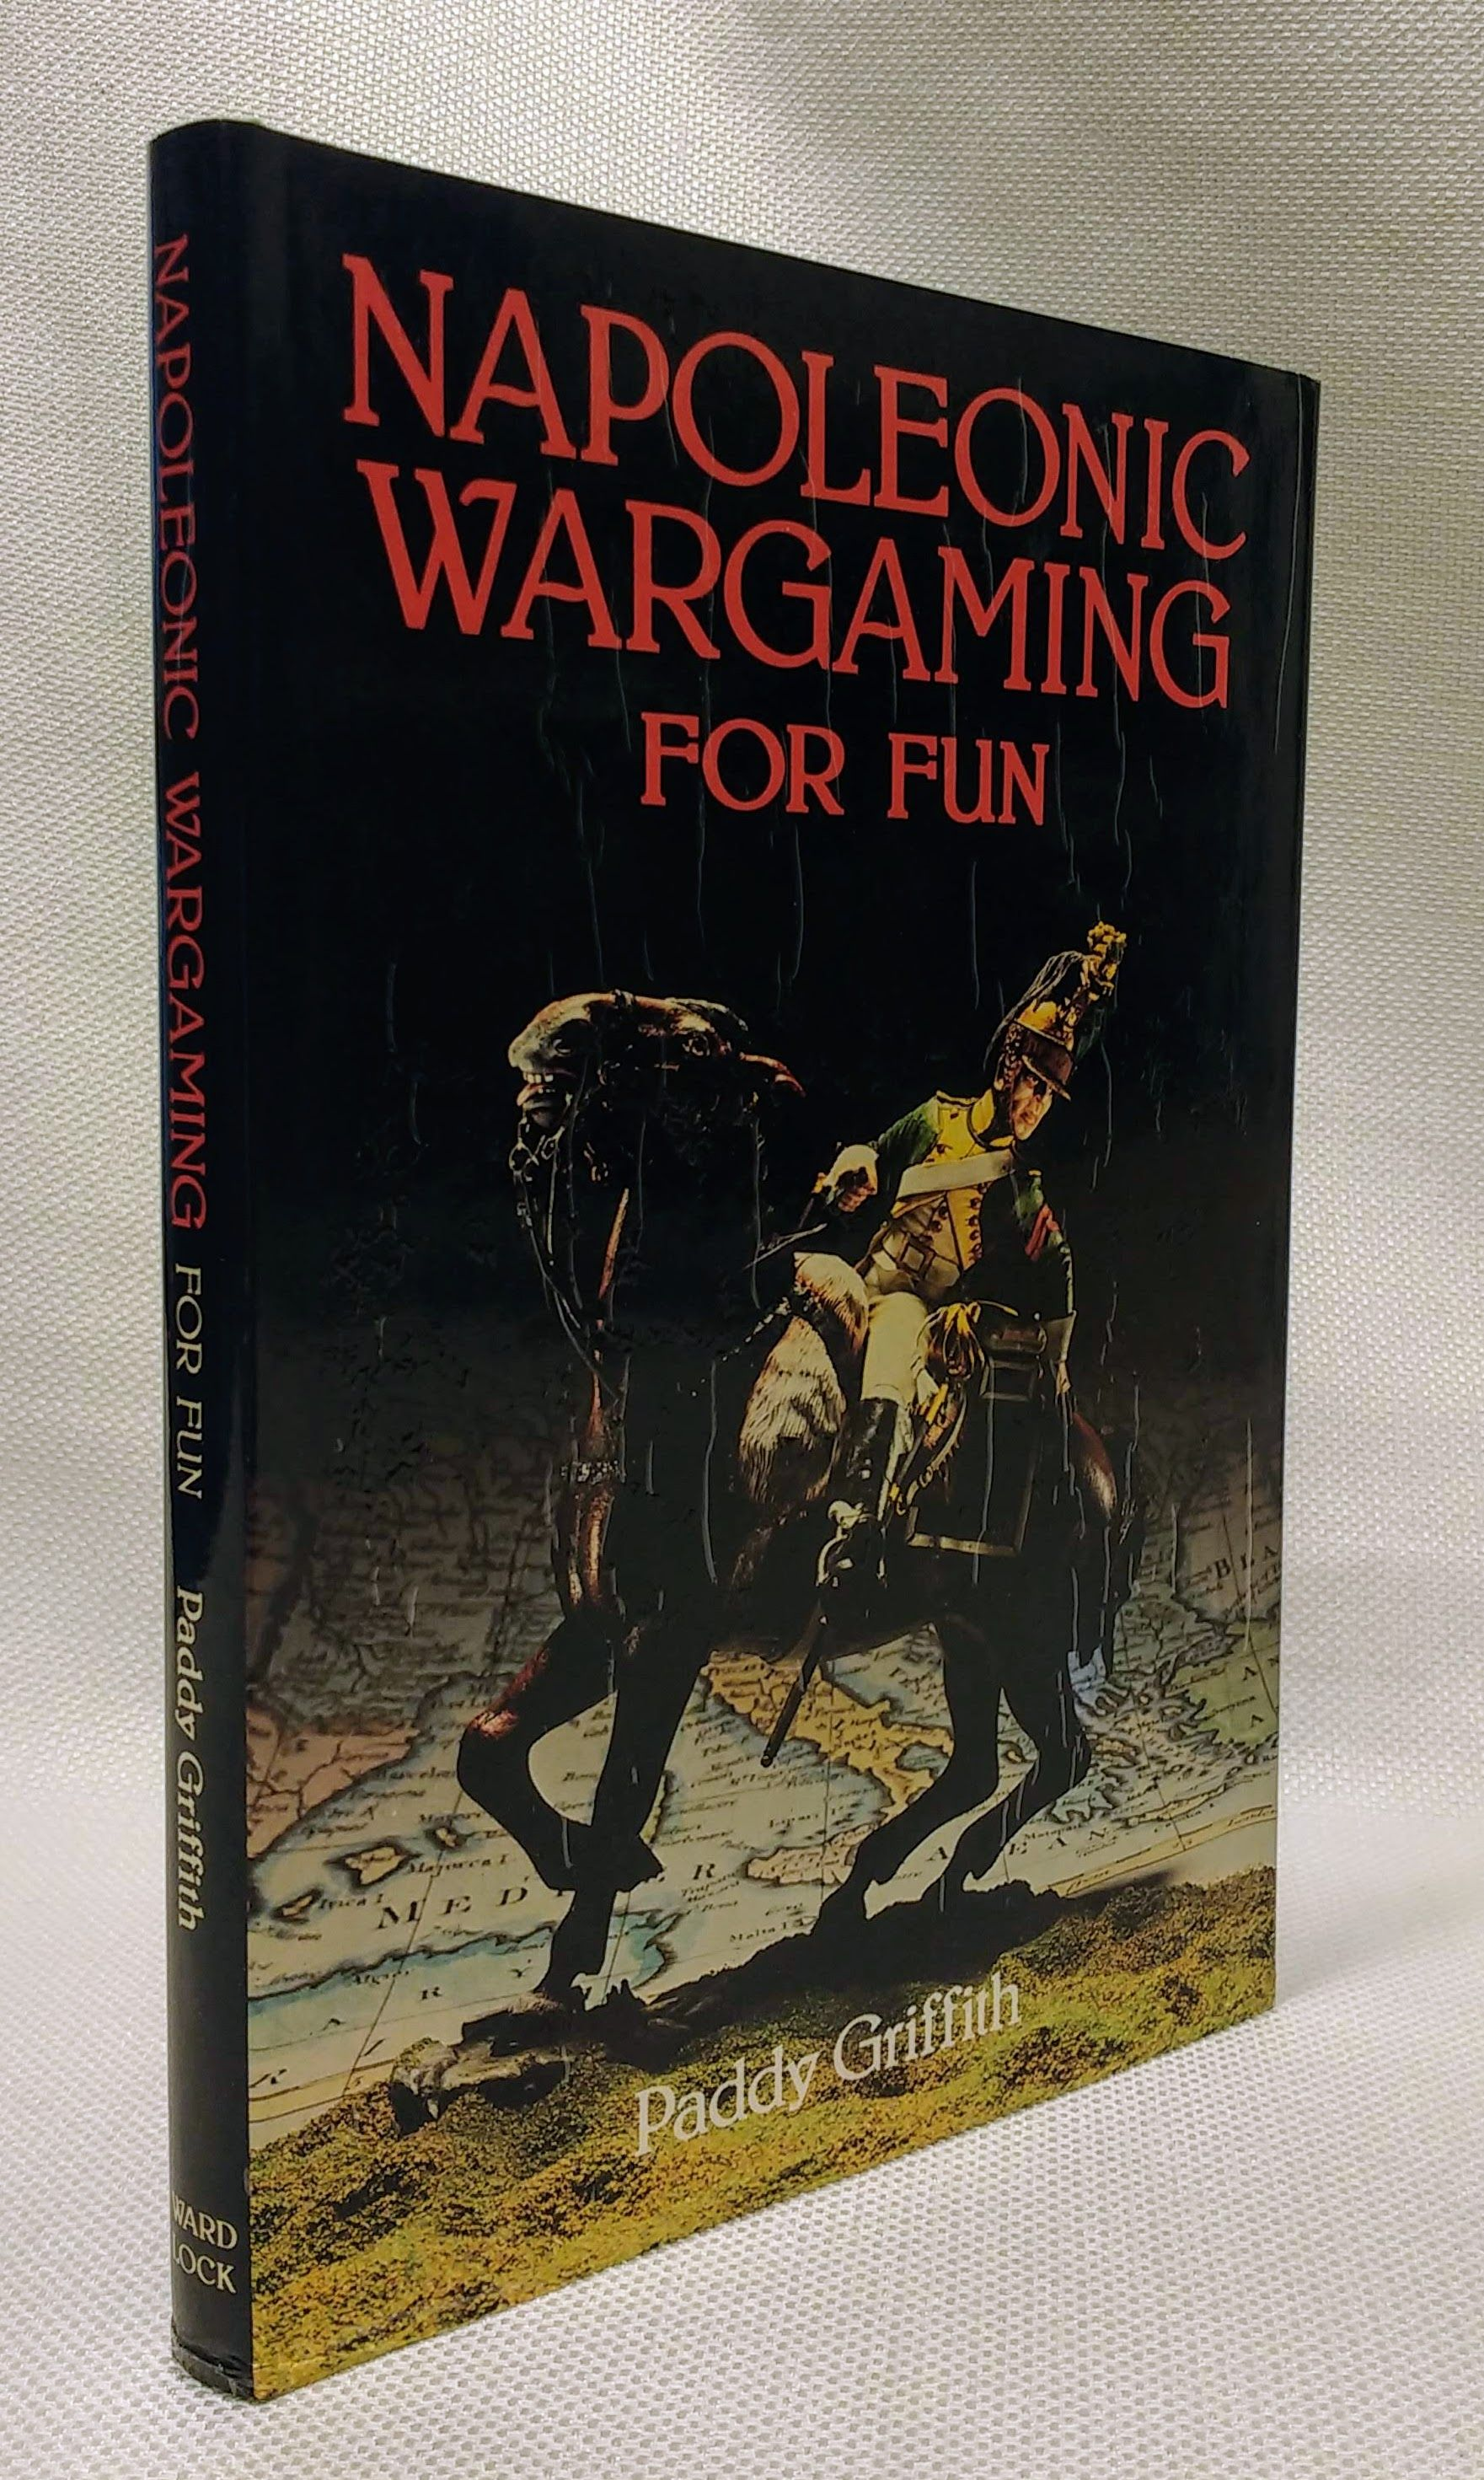 Napoleonic wargaming for fun, Griffith, Paddy